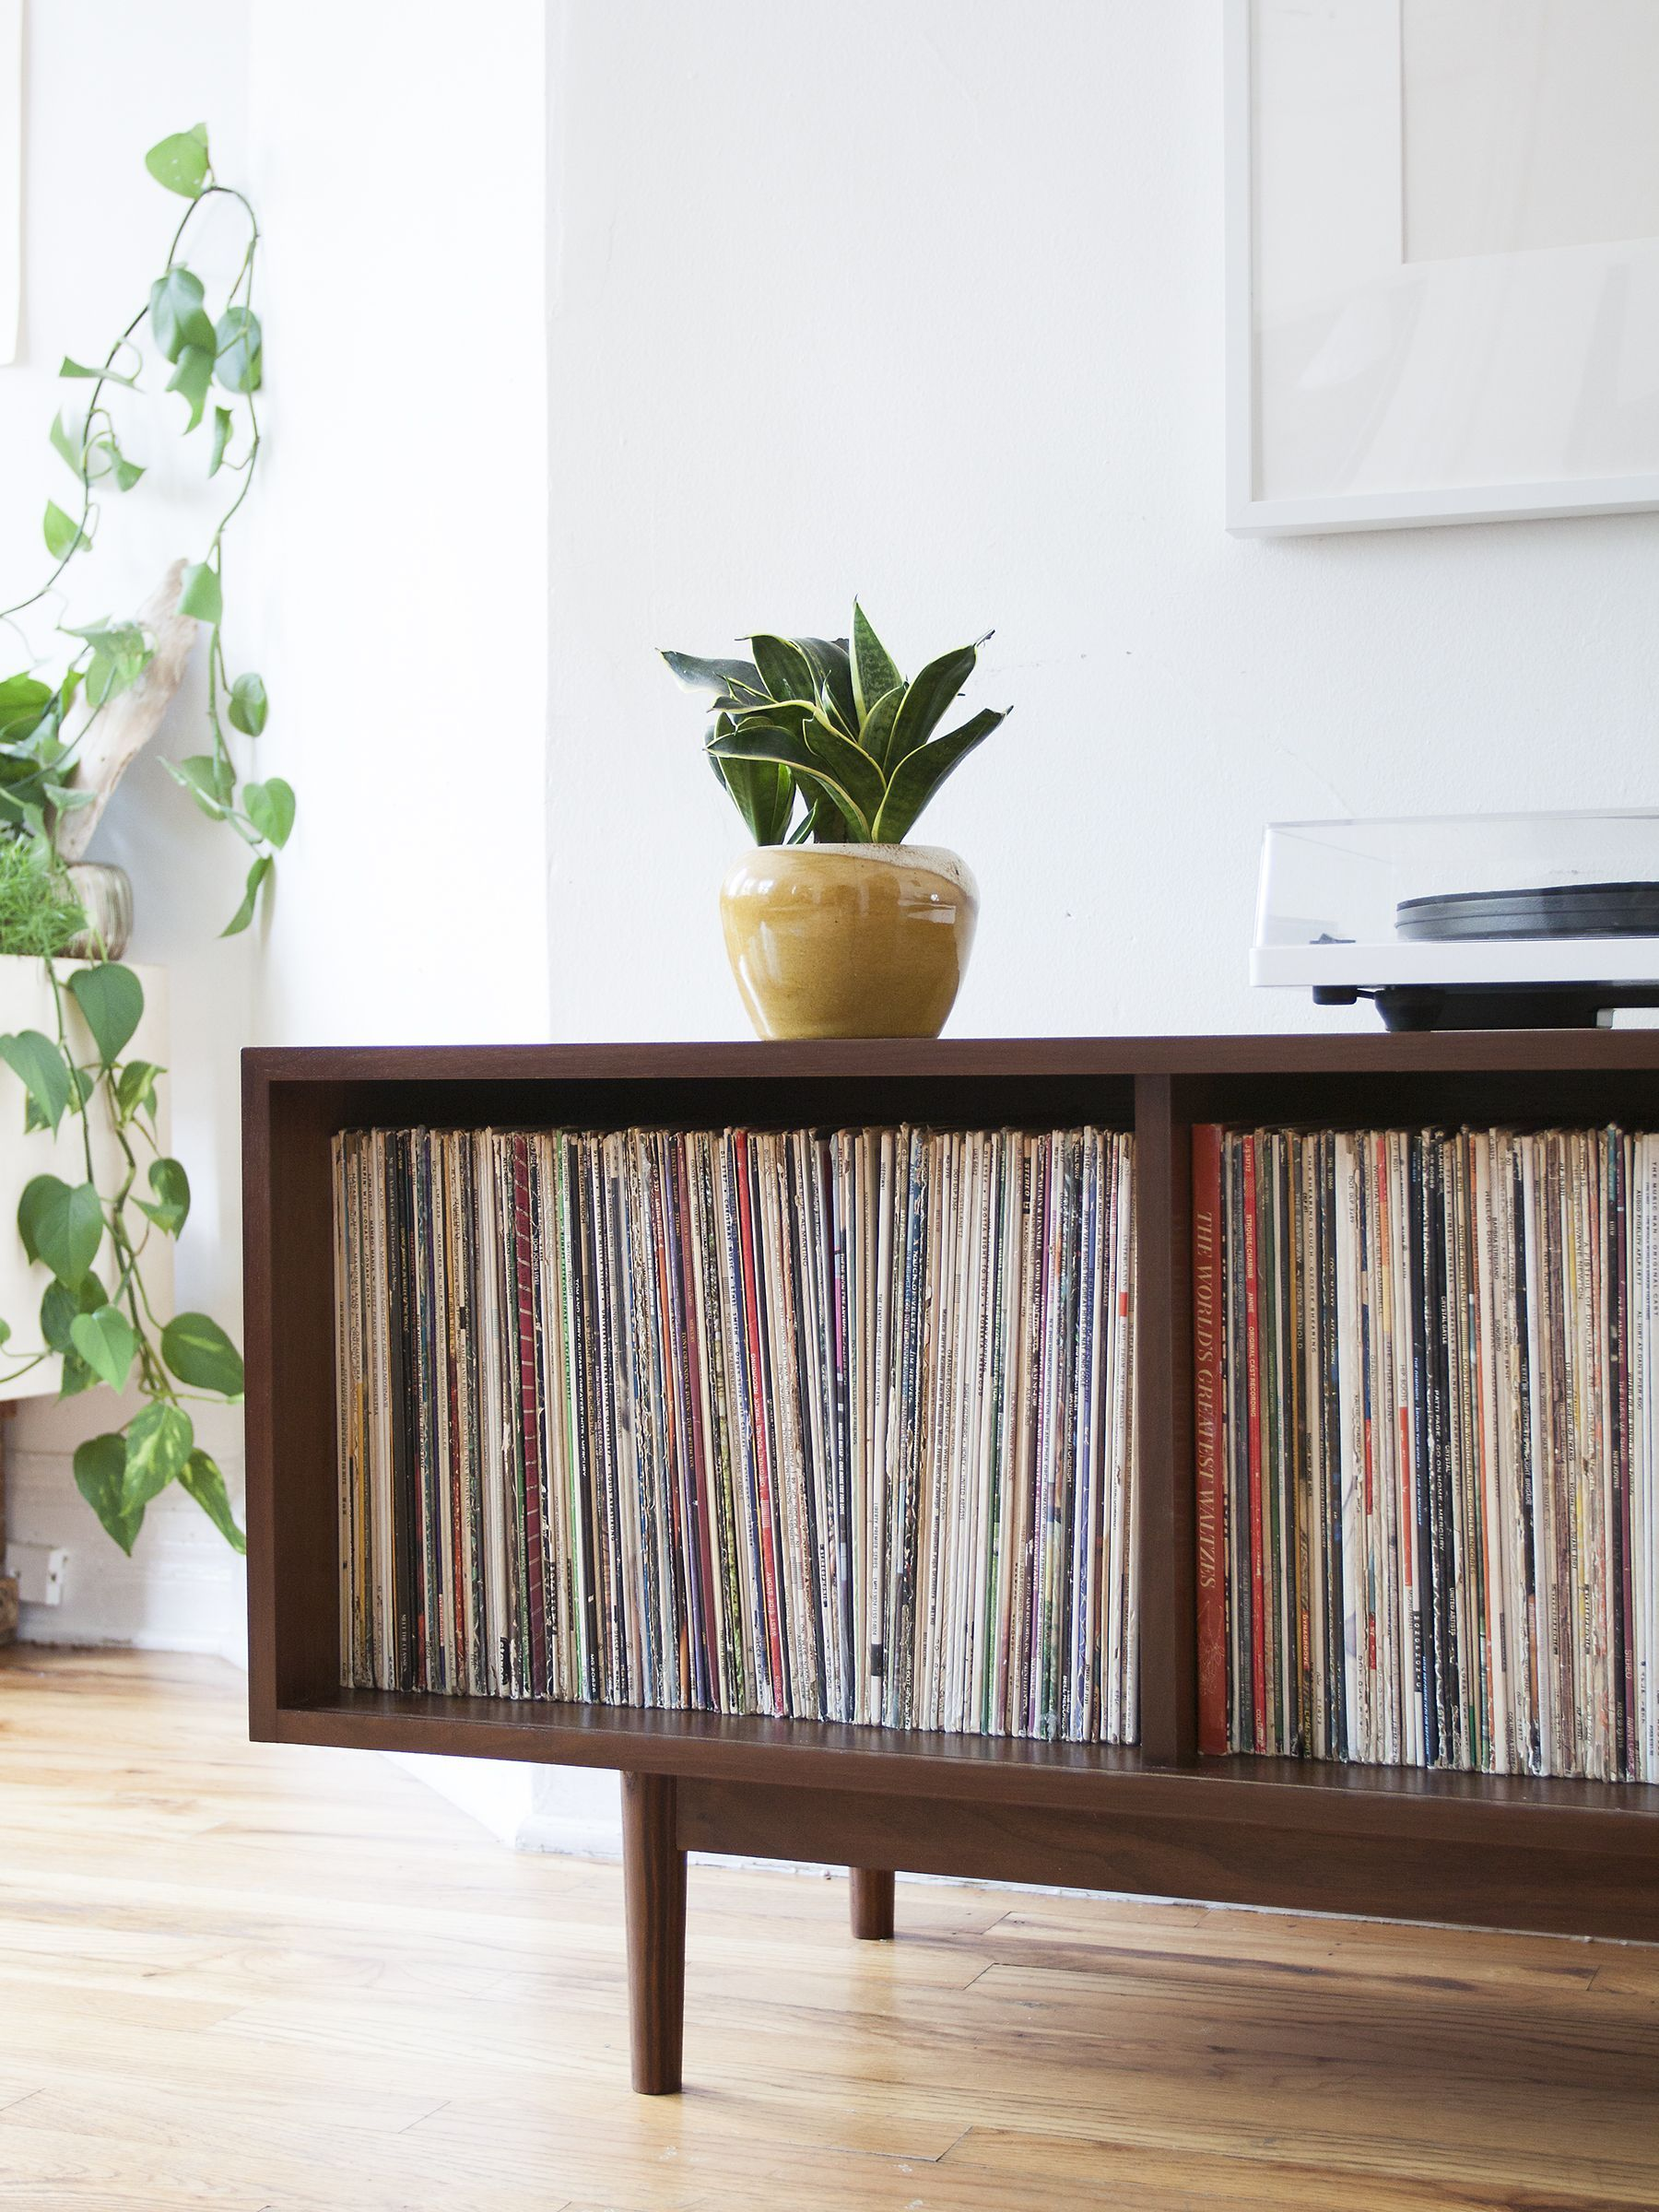 C Mid Century Modern Inspired Record Cabinet Vinyl Setup Collection Storage